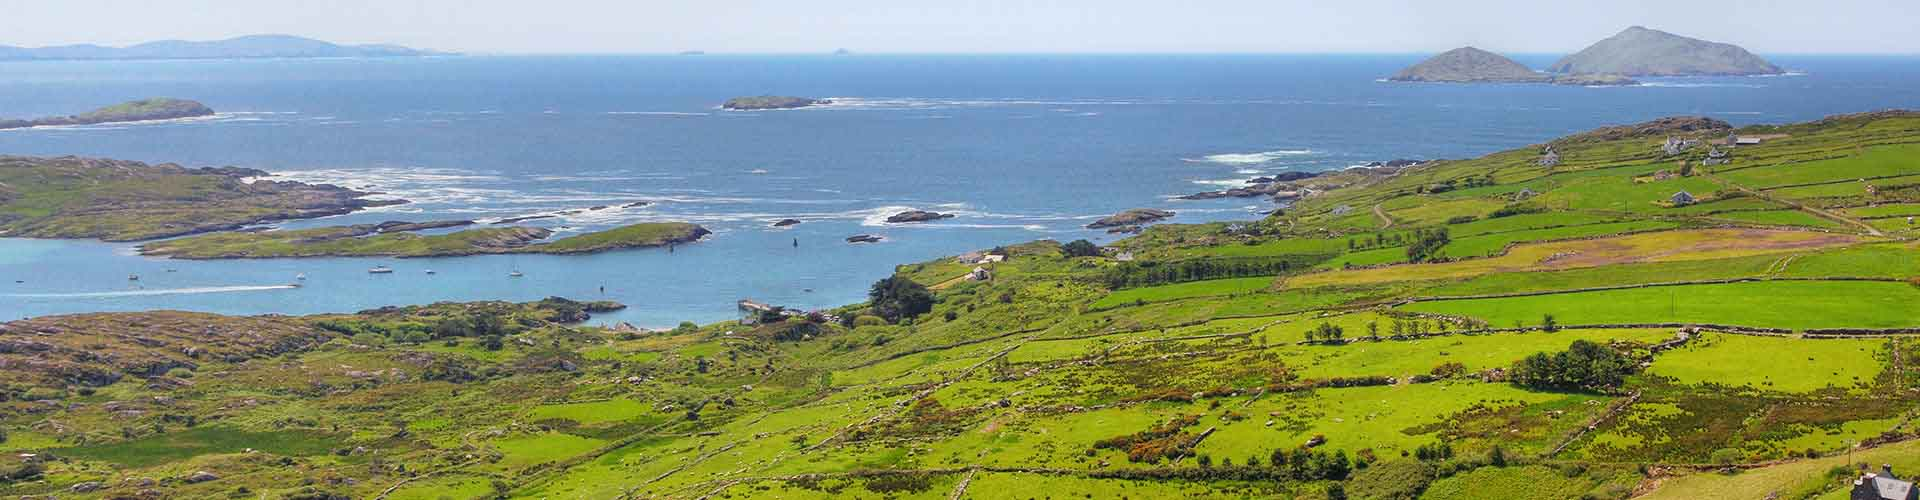 Ballinskelligs – Hostels in Ballinskelligs. Maps for Ballinskelligs, Photos and Reviews for each hostel in Ballinskelligs.